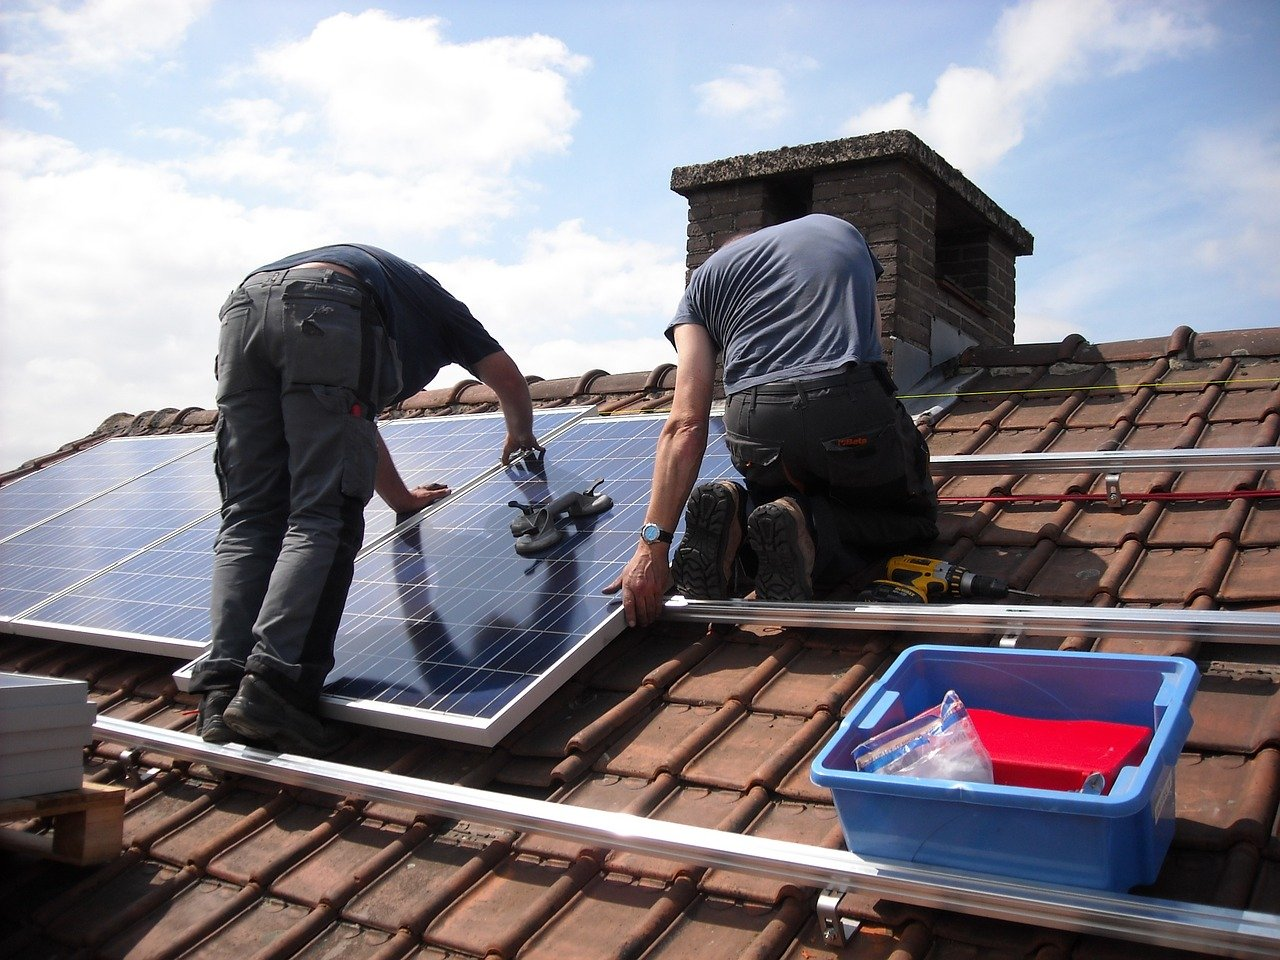 Installing solar panels on a house renovation in Spain